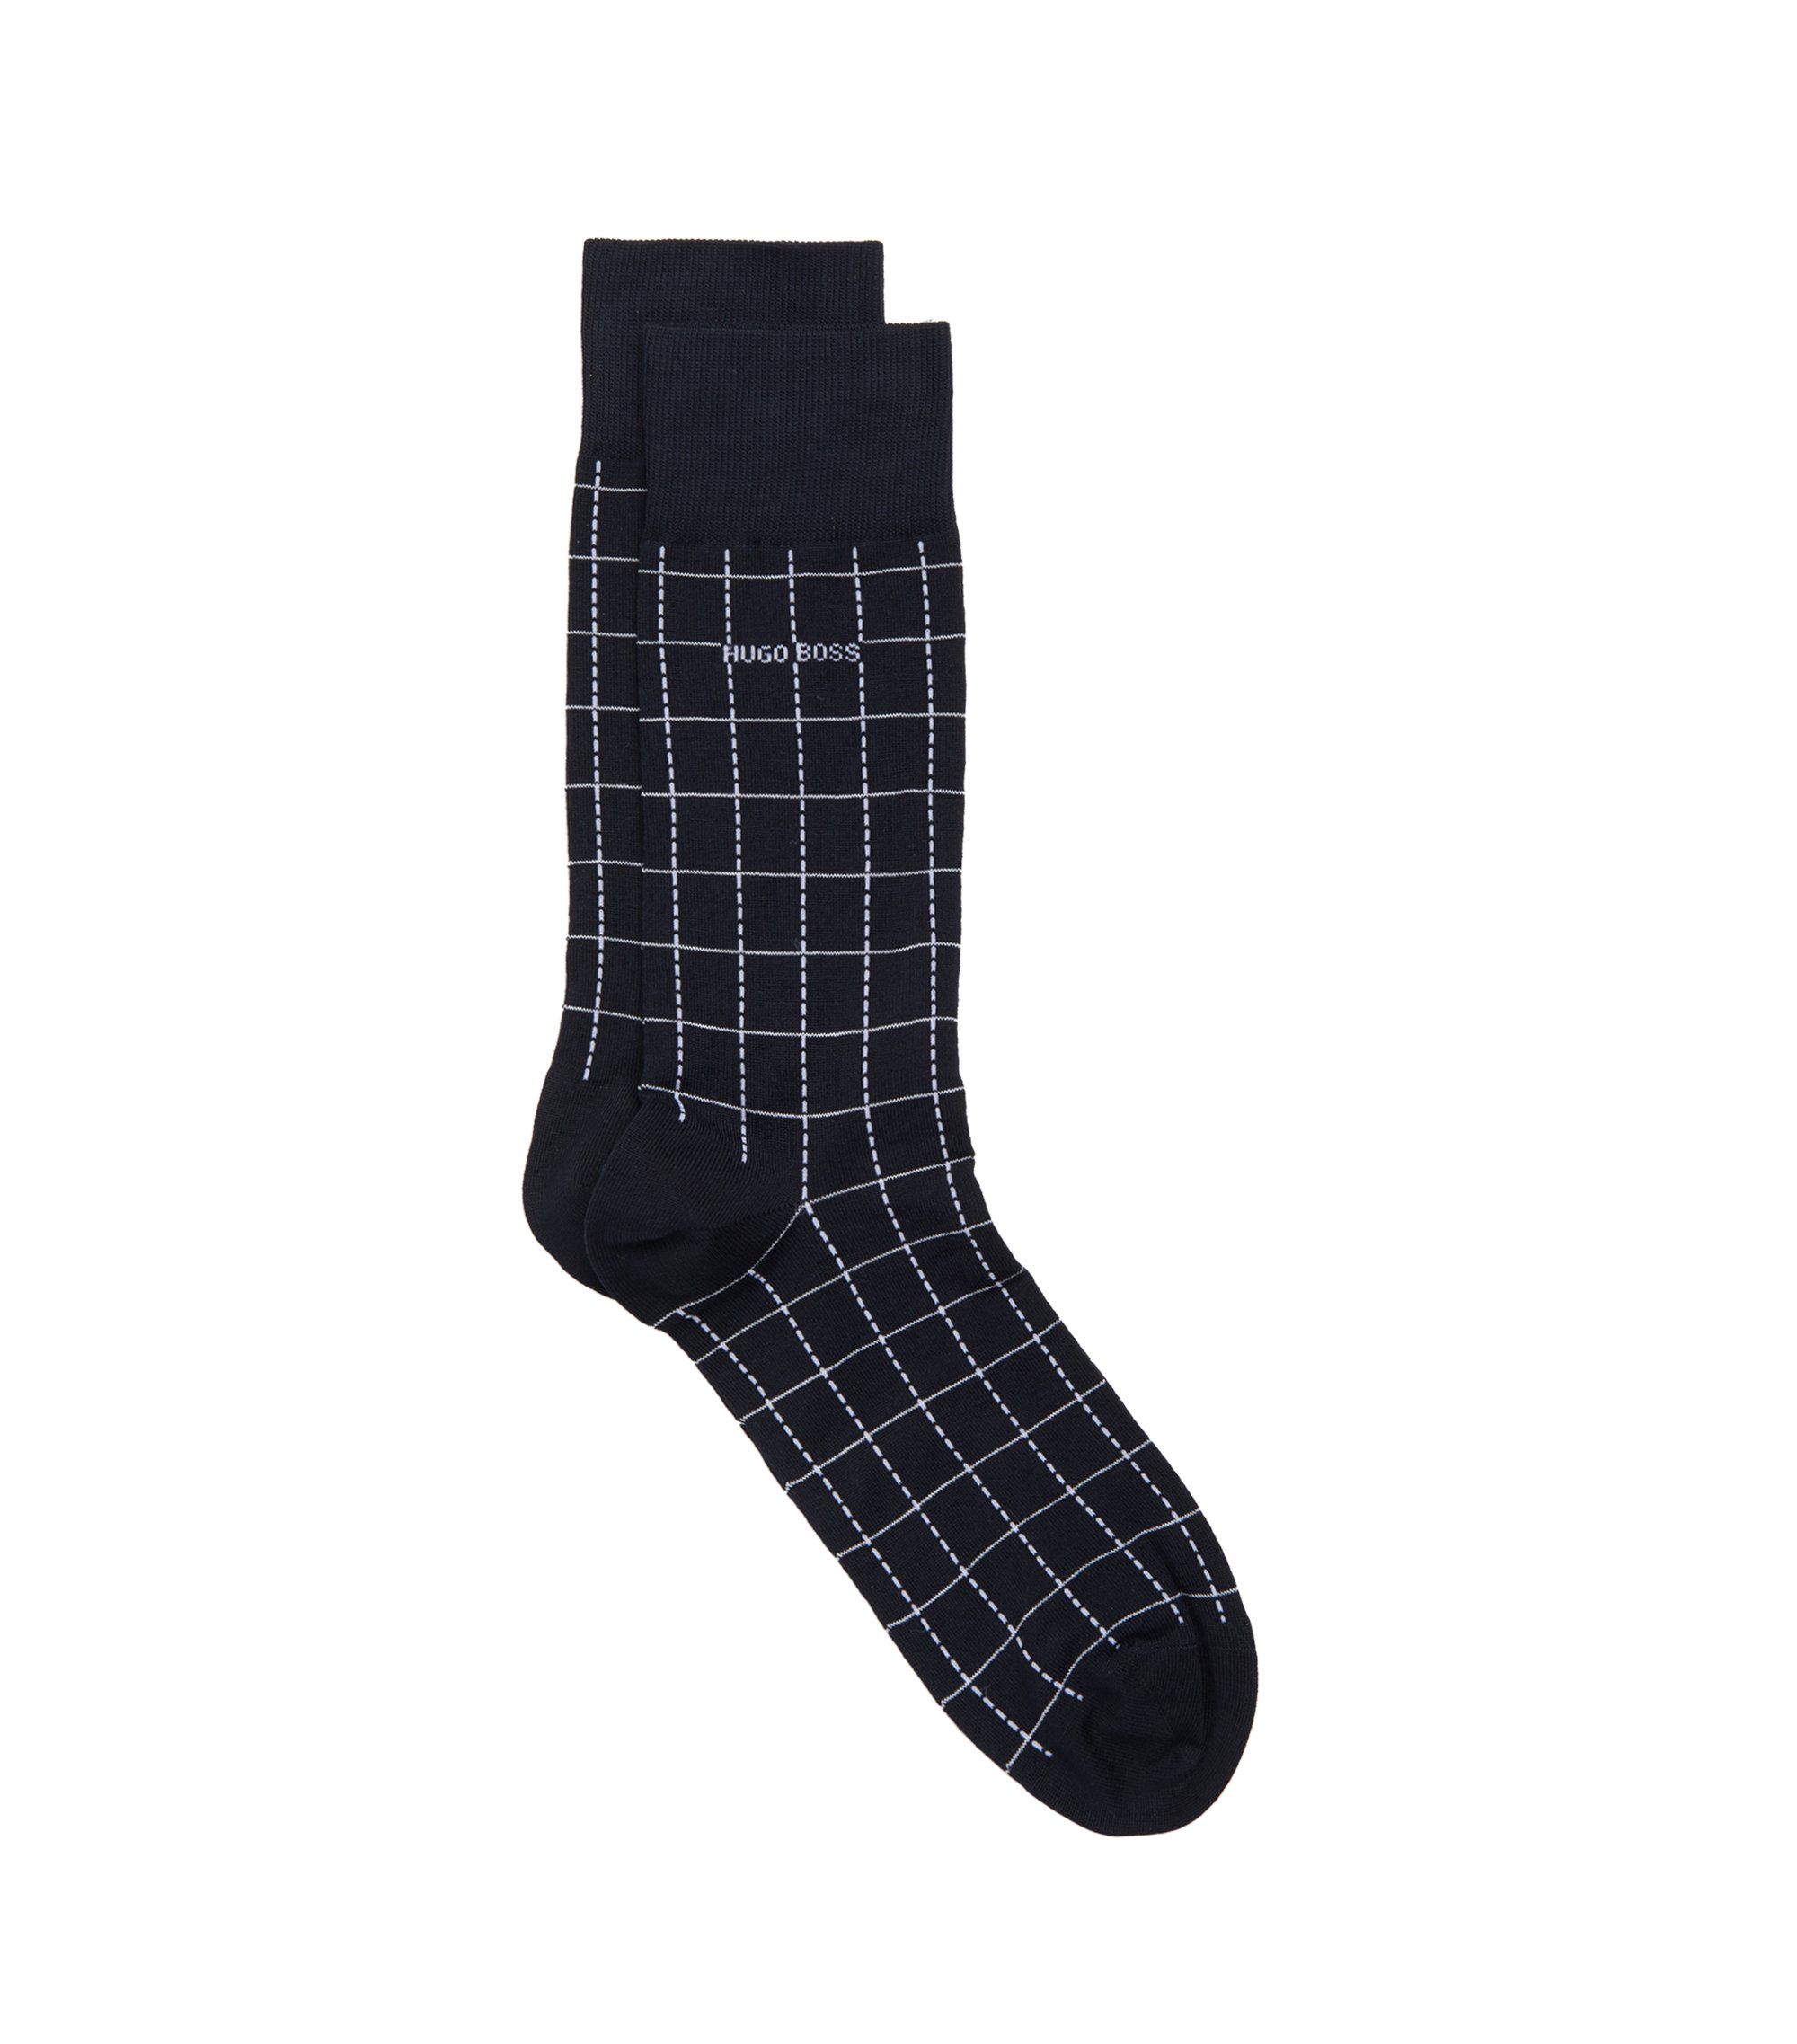 Checked Stretch Cotton Blend Socks | RS Design US, Dark Blue